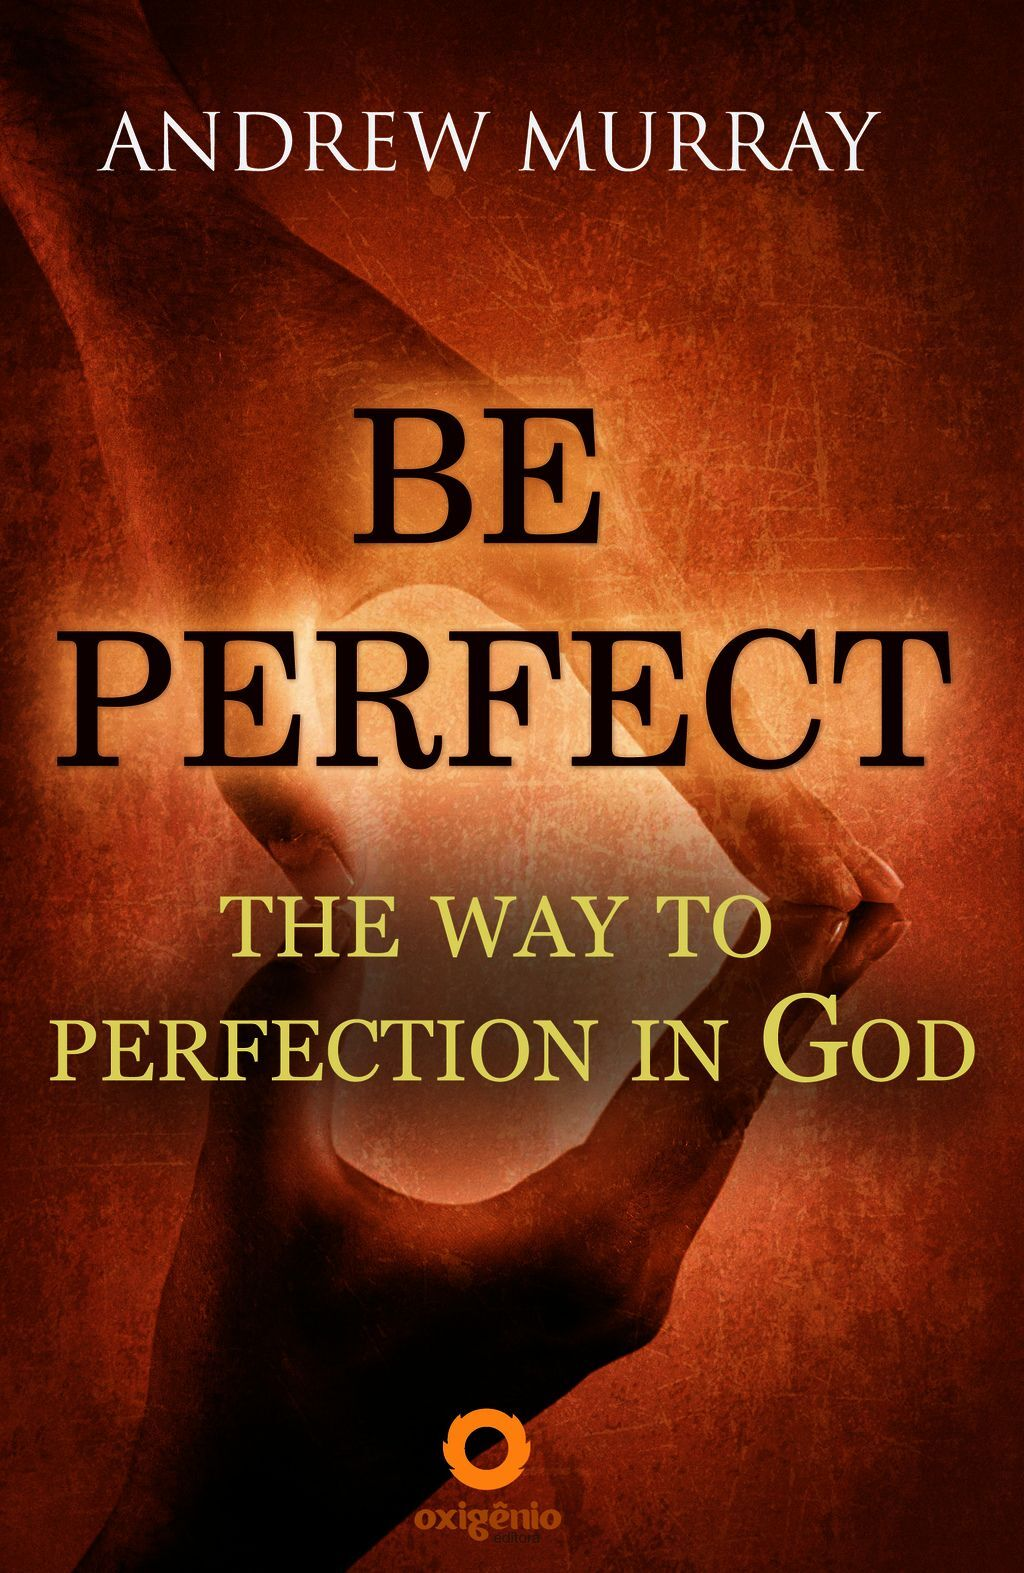 Be Perfect - The Way To Perfection In God